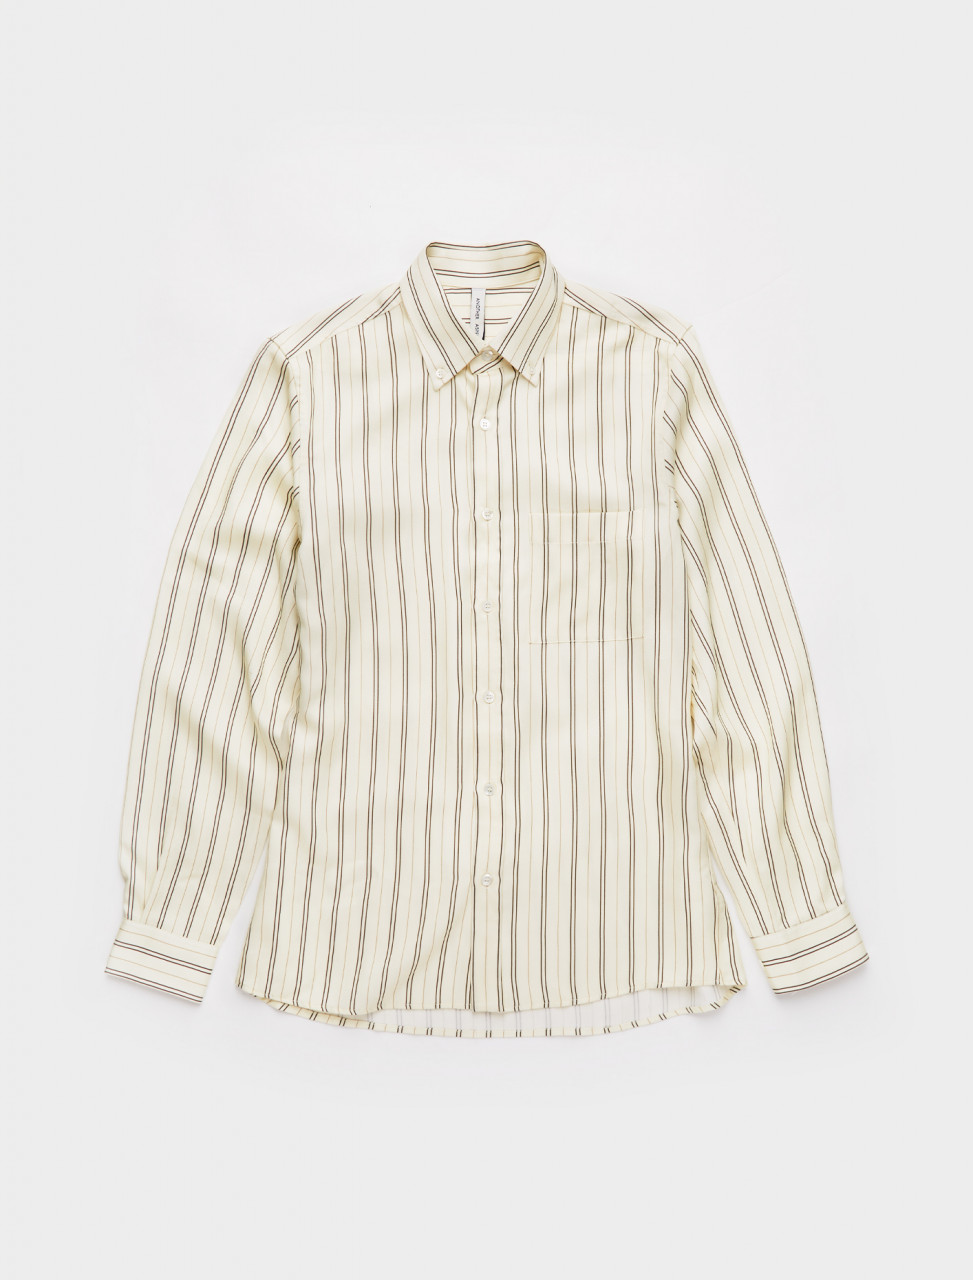 344-123458-003 ANOTHER ASPECT ANOTHER SHIRT 1.0 STRIPE